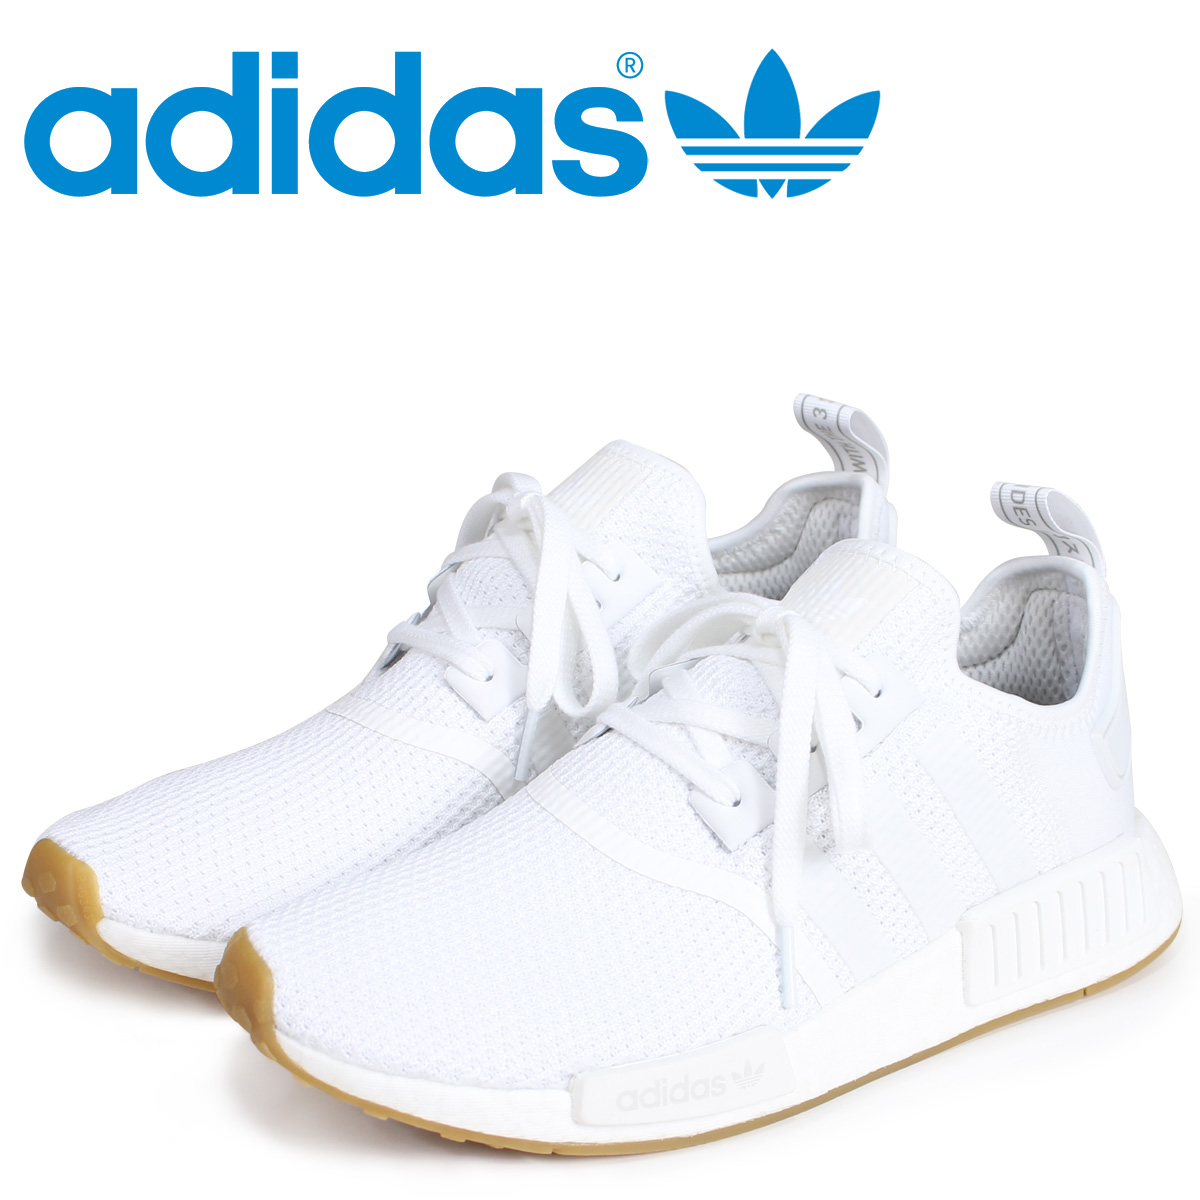 100% authentic online shop another chance adidas Originals NMD R1 Adidas originals sneakers N M D nomad men D96635  white white